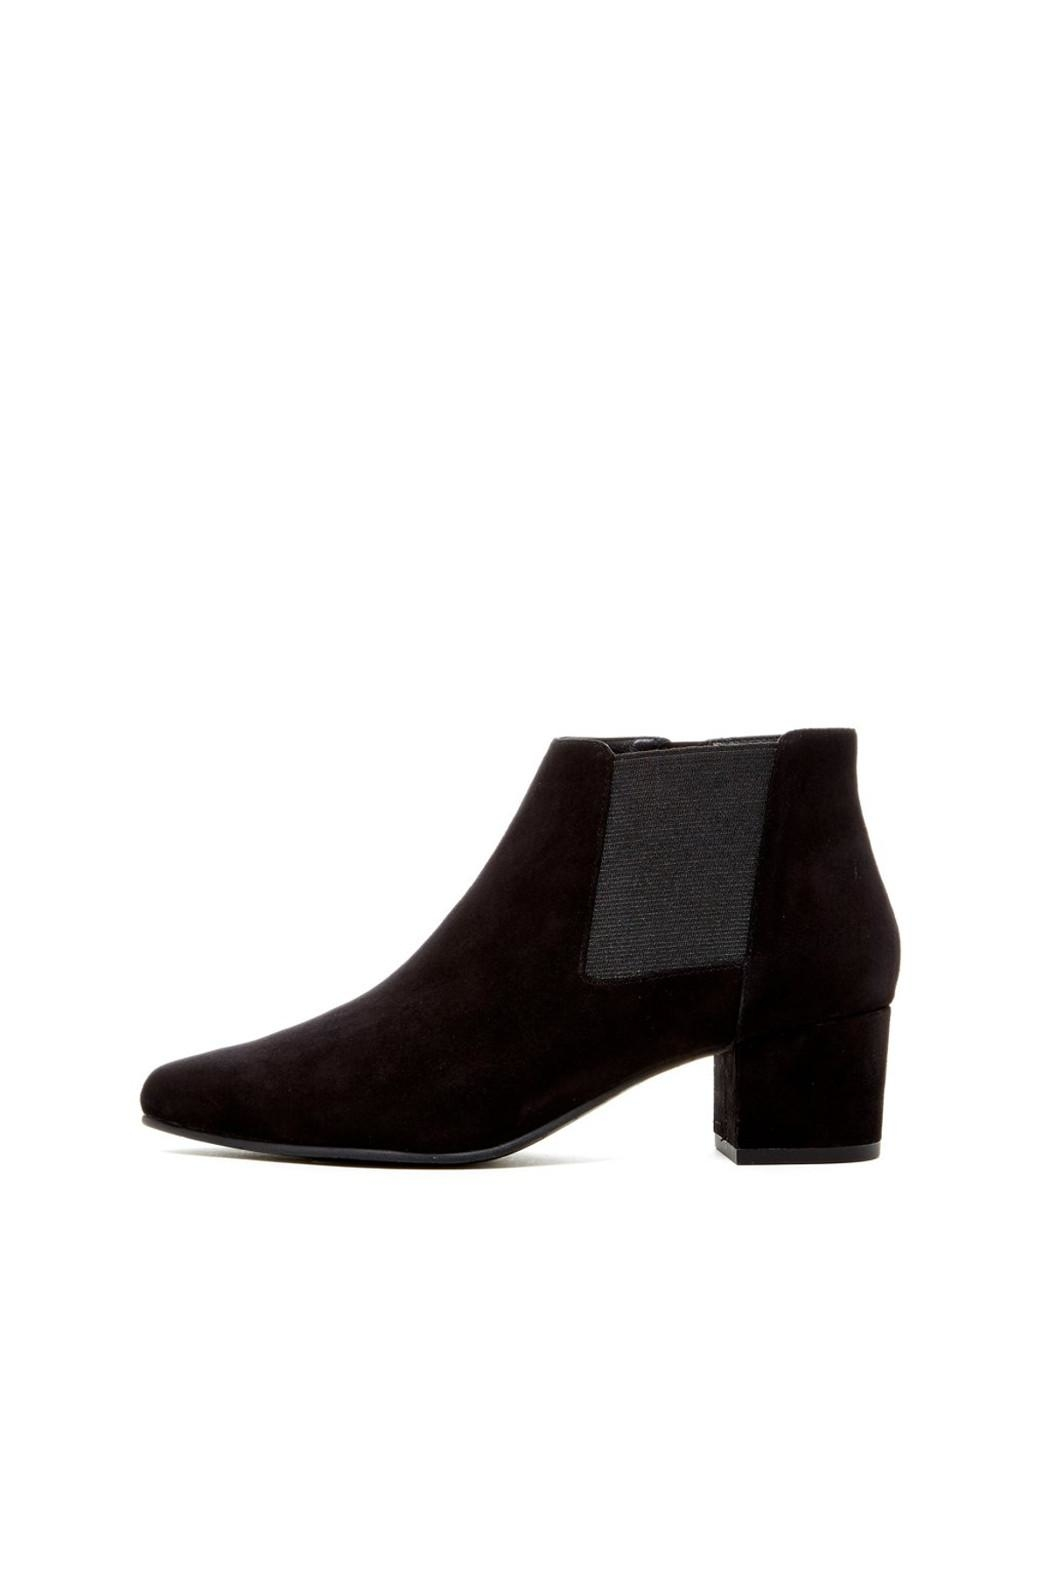 Pelle Moda Black Suede Bootie - Front Cropped Image